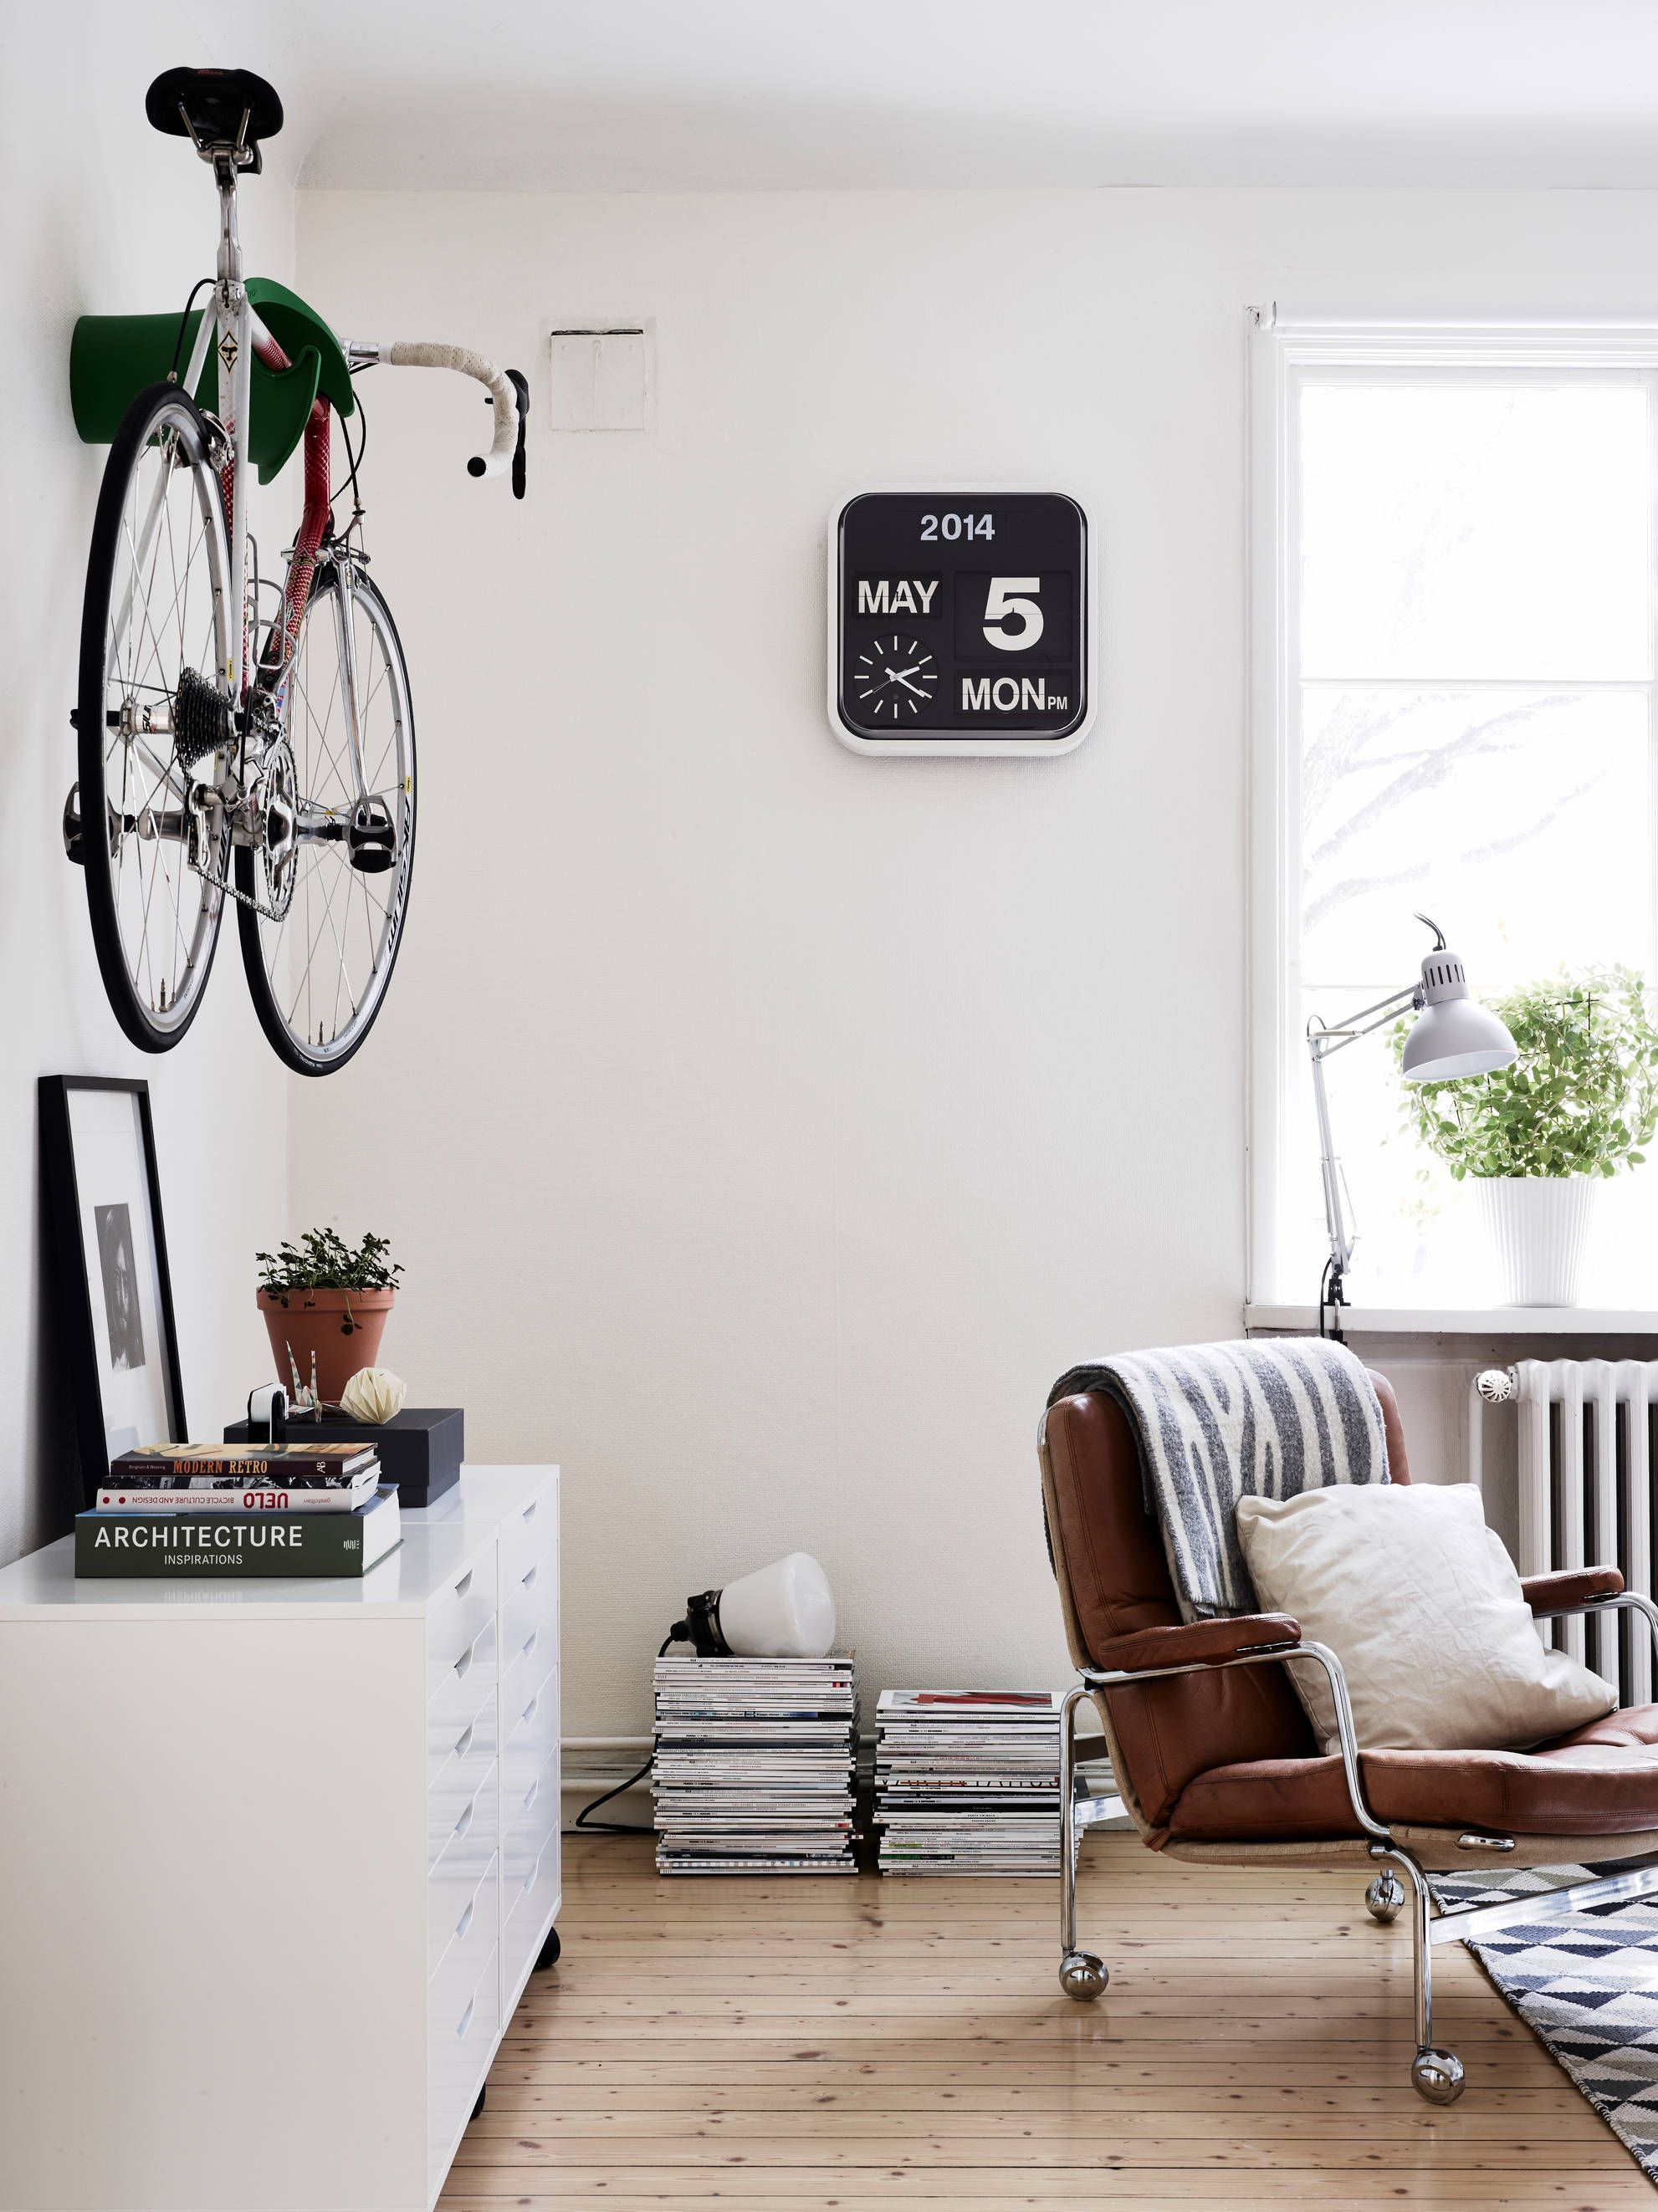 Bike in the living room | Pinterest | Clocks, Interiors and Living rooms